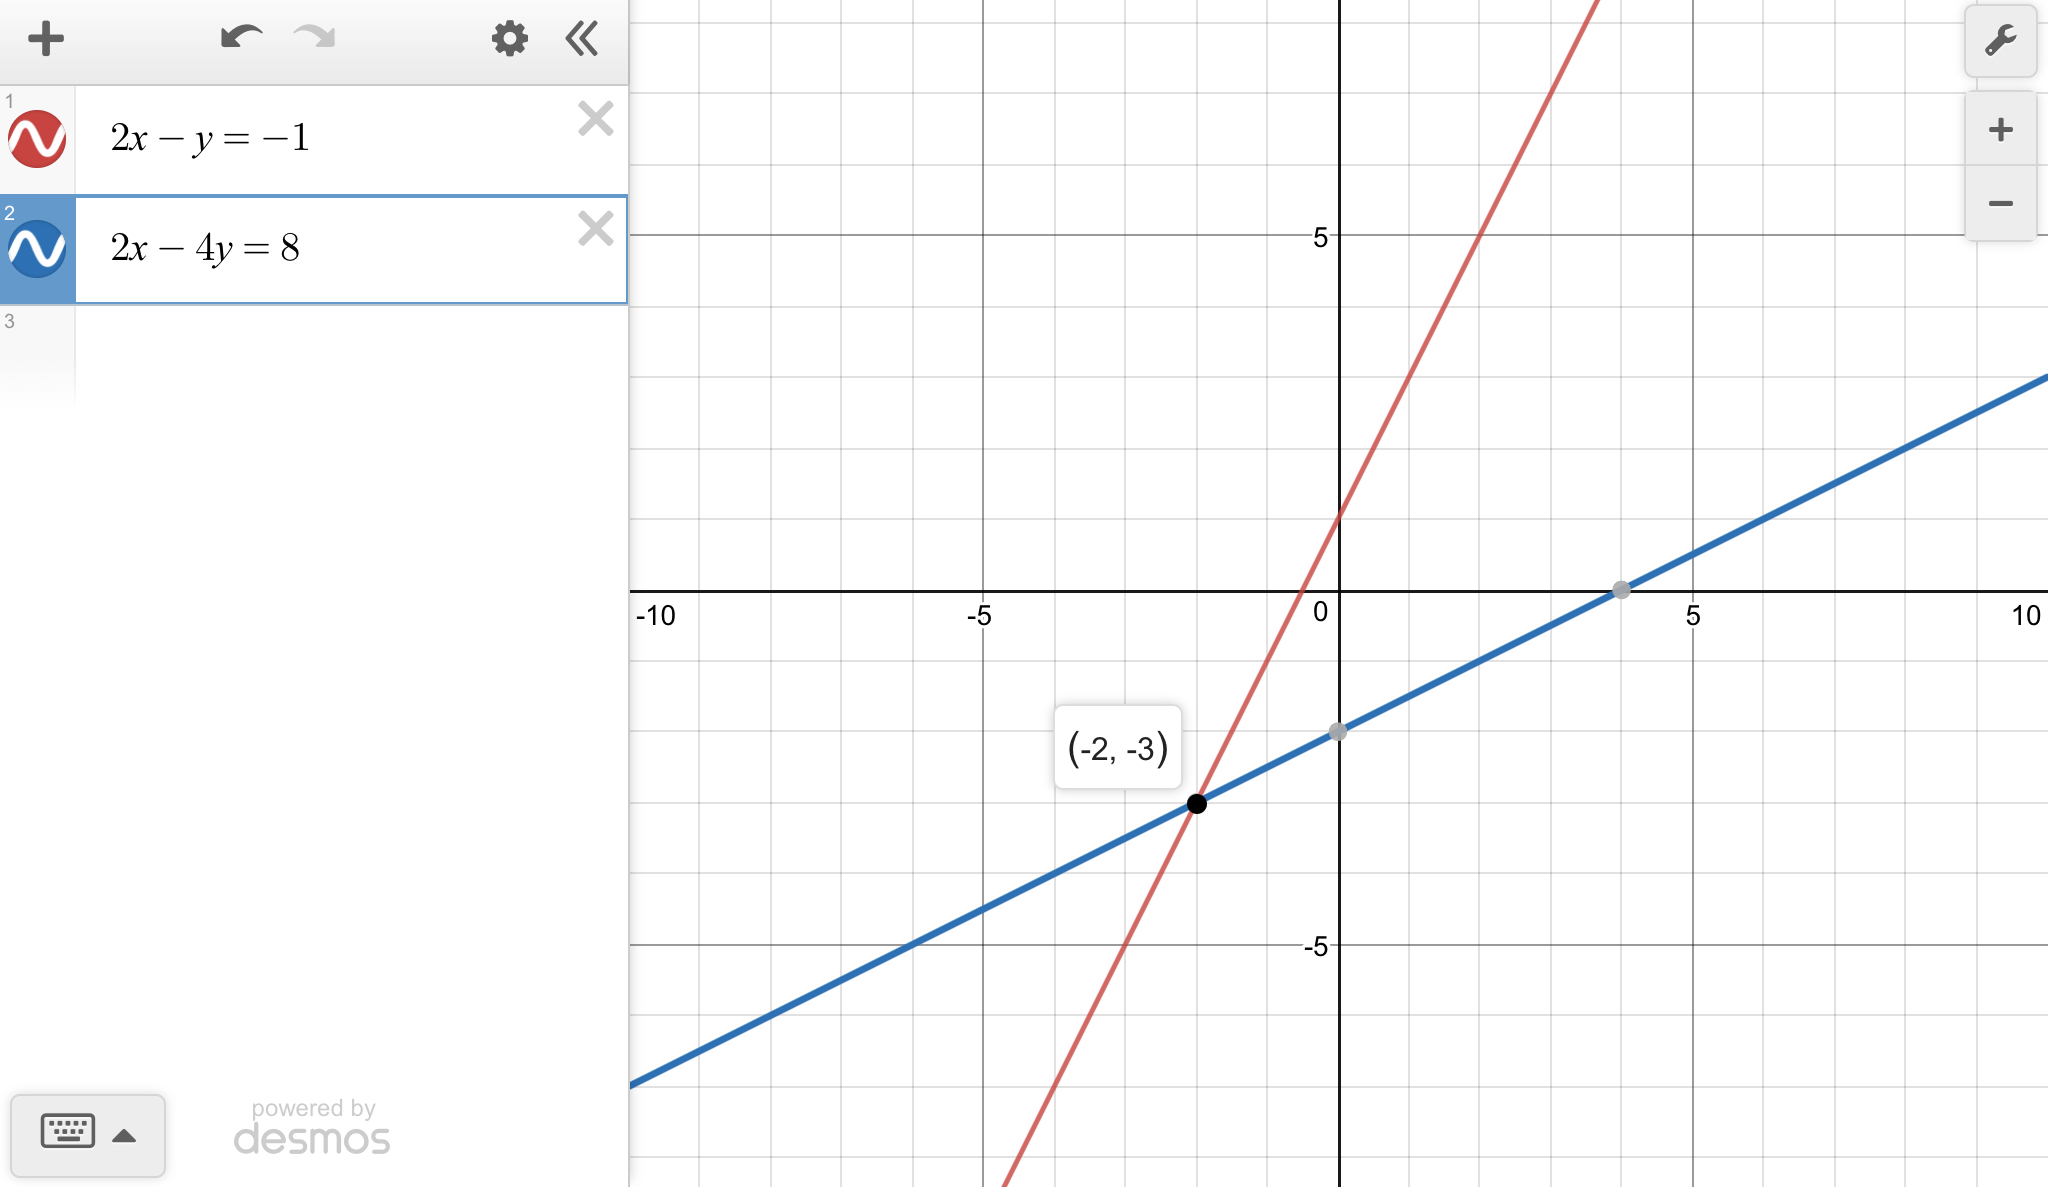 2x 4y 8 Solve The Equation For X In Terms Of Y